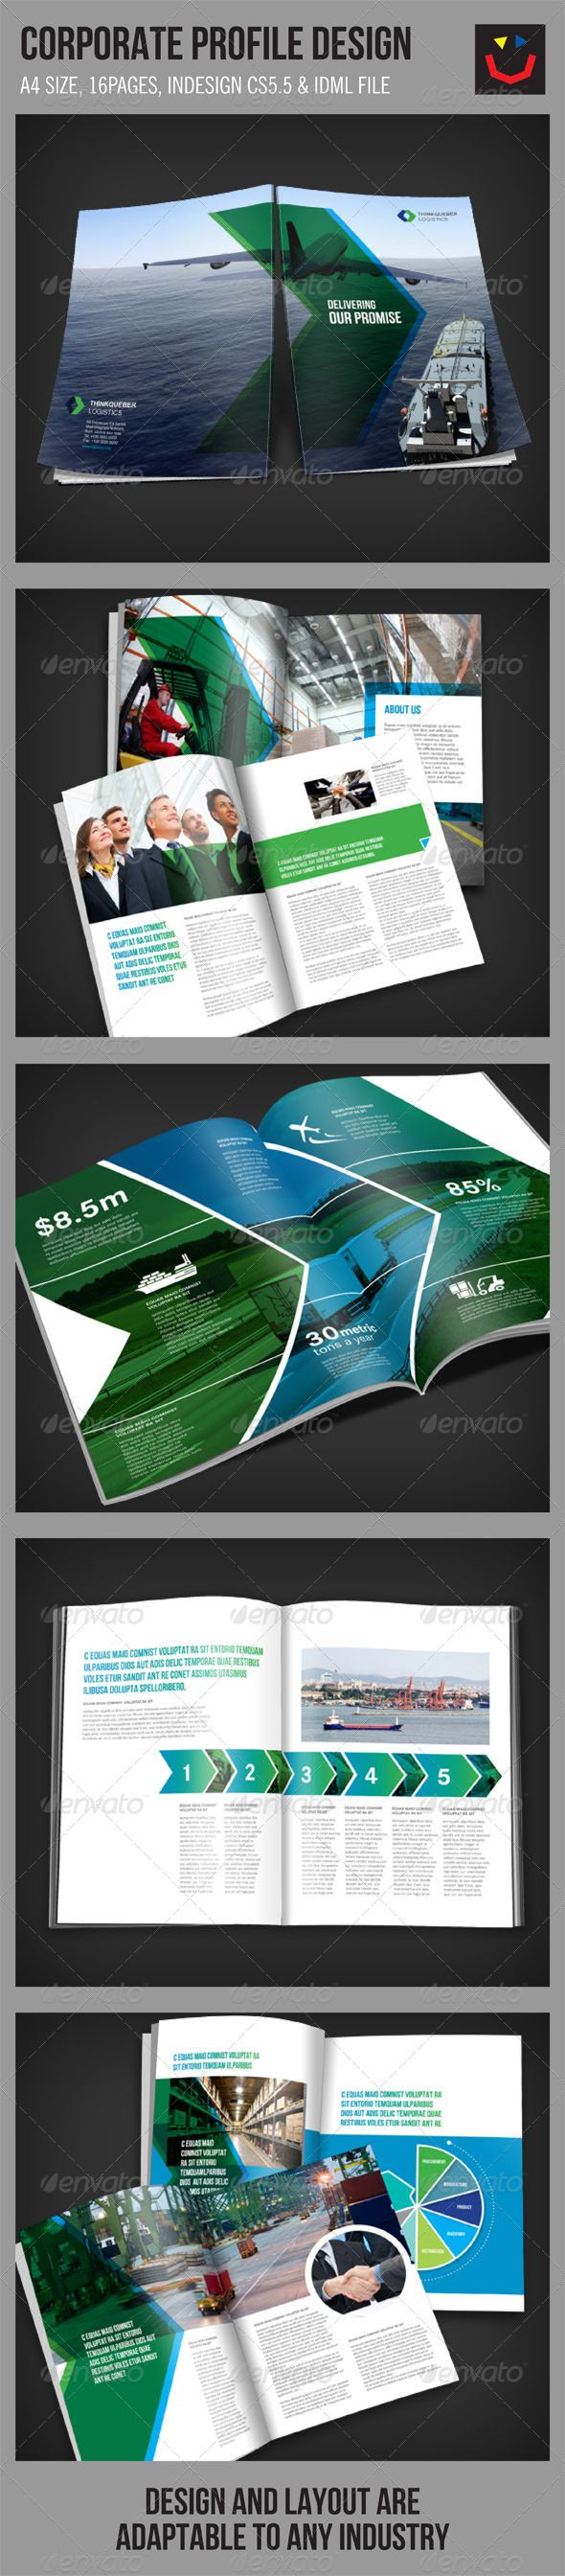 Corporate Brochure Design Brochures Template And Corporate - Editable brochure templates